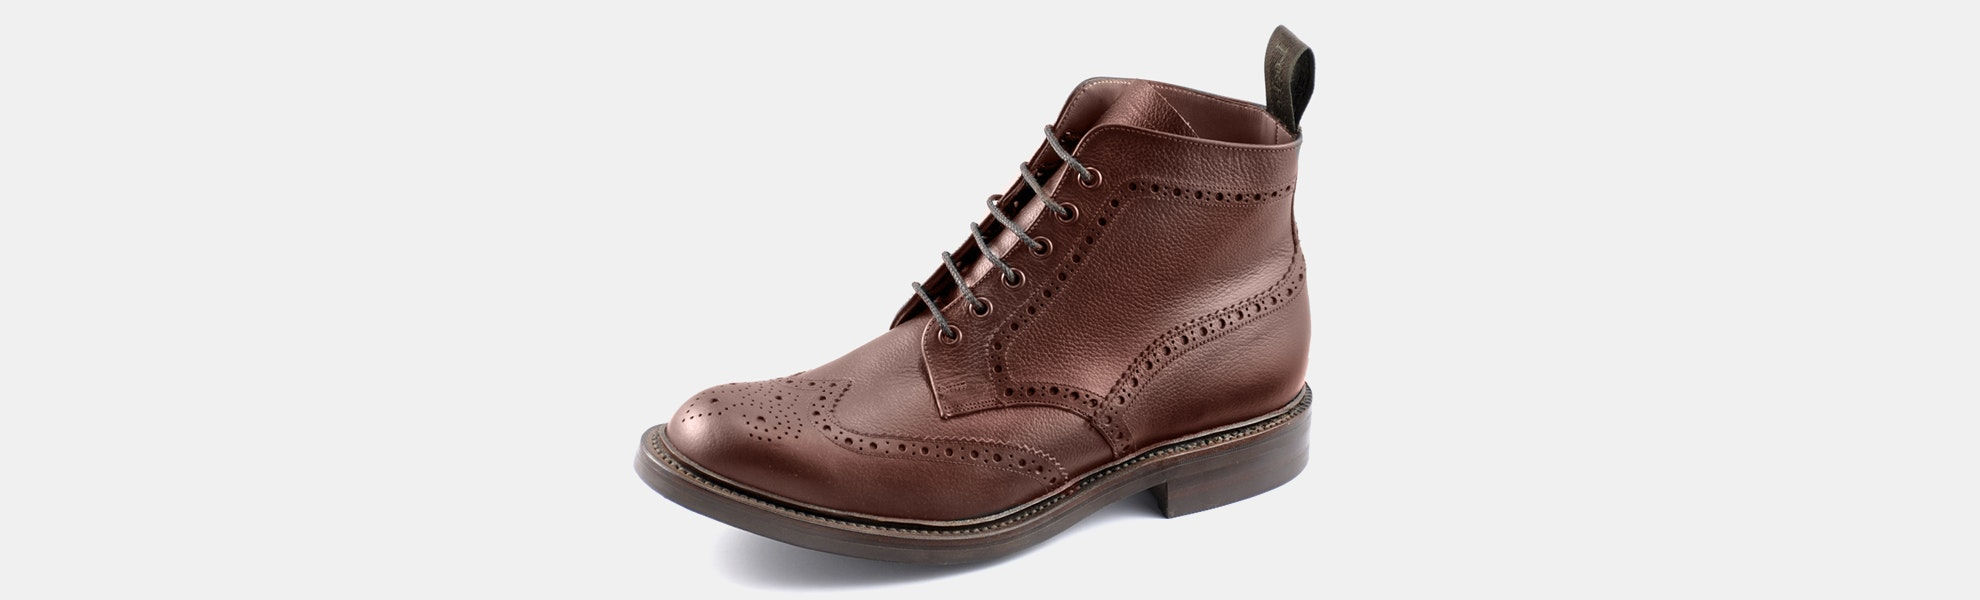 Loake 1880 Bedale Wingtip Boot